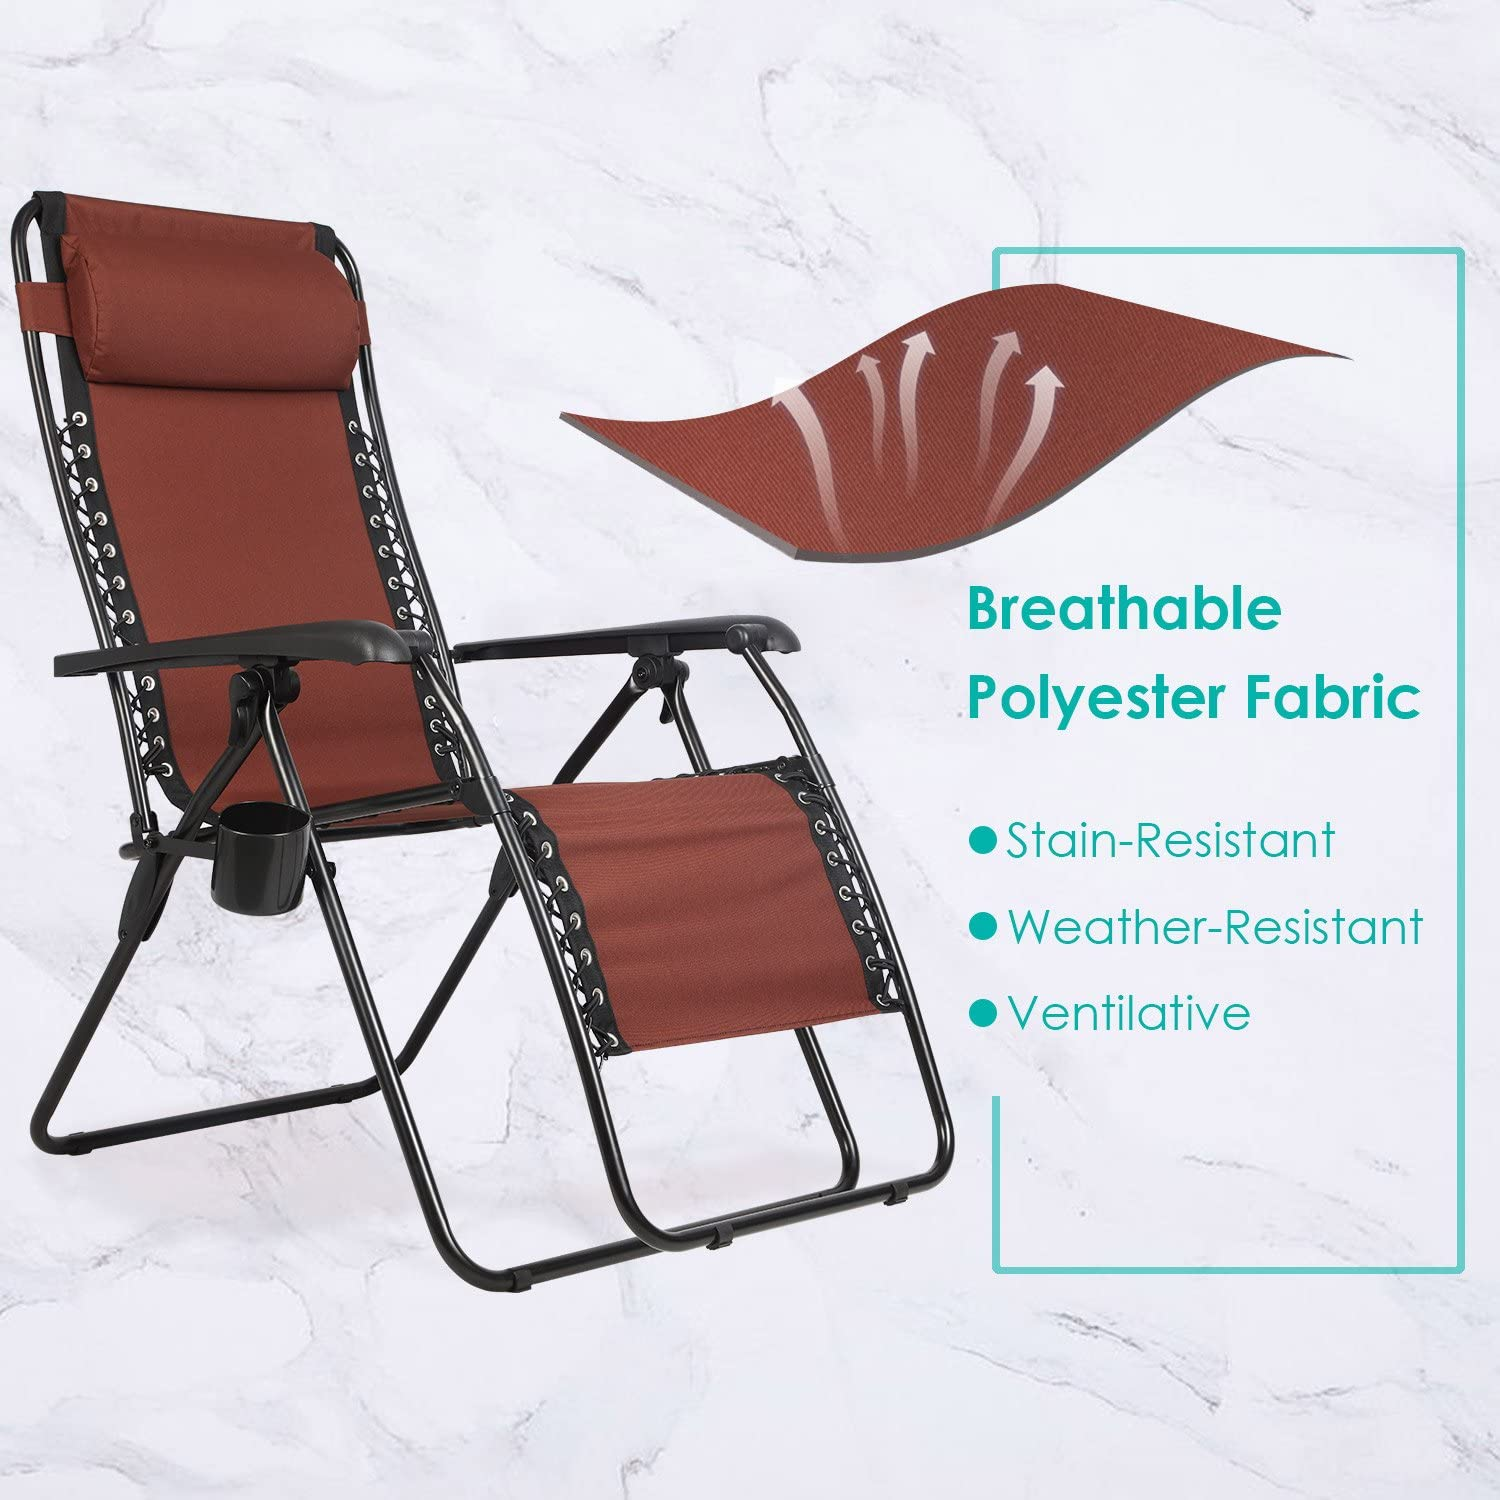 """PORTAL Zero Gravity Recliner Lounge Chair, Folding Patio Lawn Pool Chair with Headrest Cup Holder, Support 300lbs, Brown, 20.5""""(L) X21""""(W) X 45""""(H) (PR-LC-8012-BR): Sports & Outdoors"""